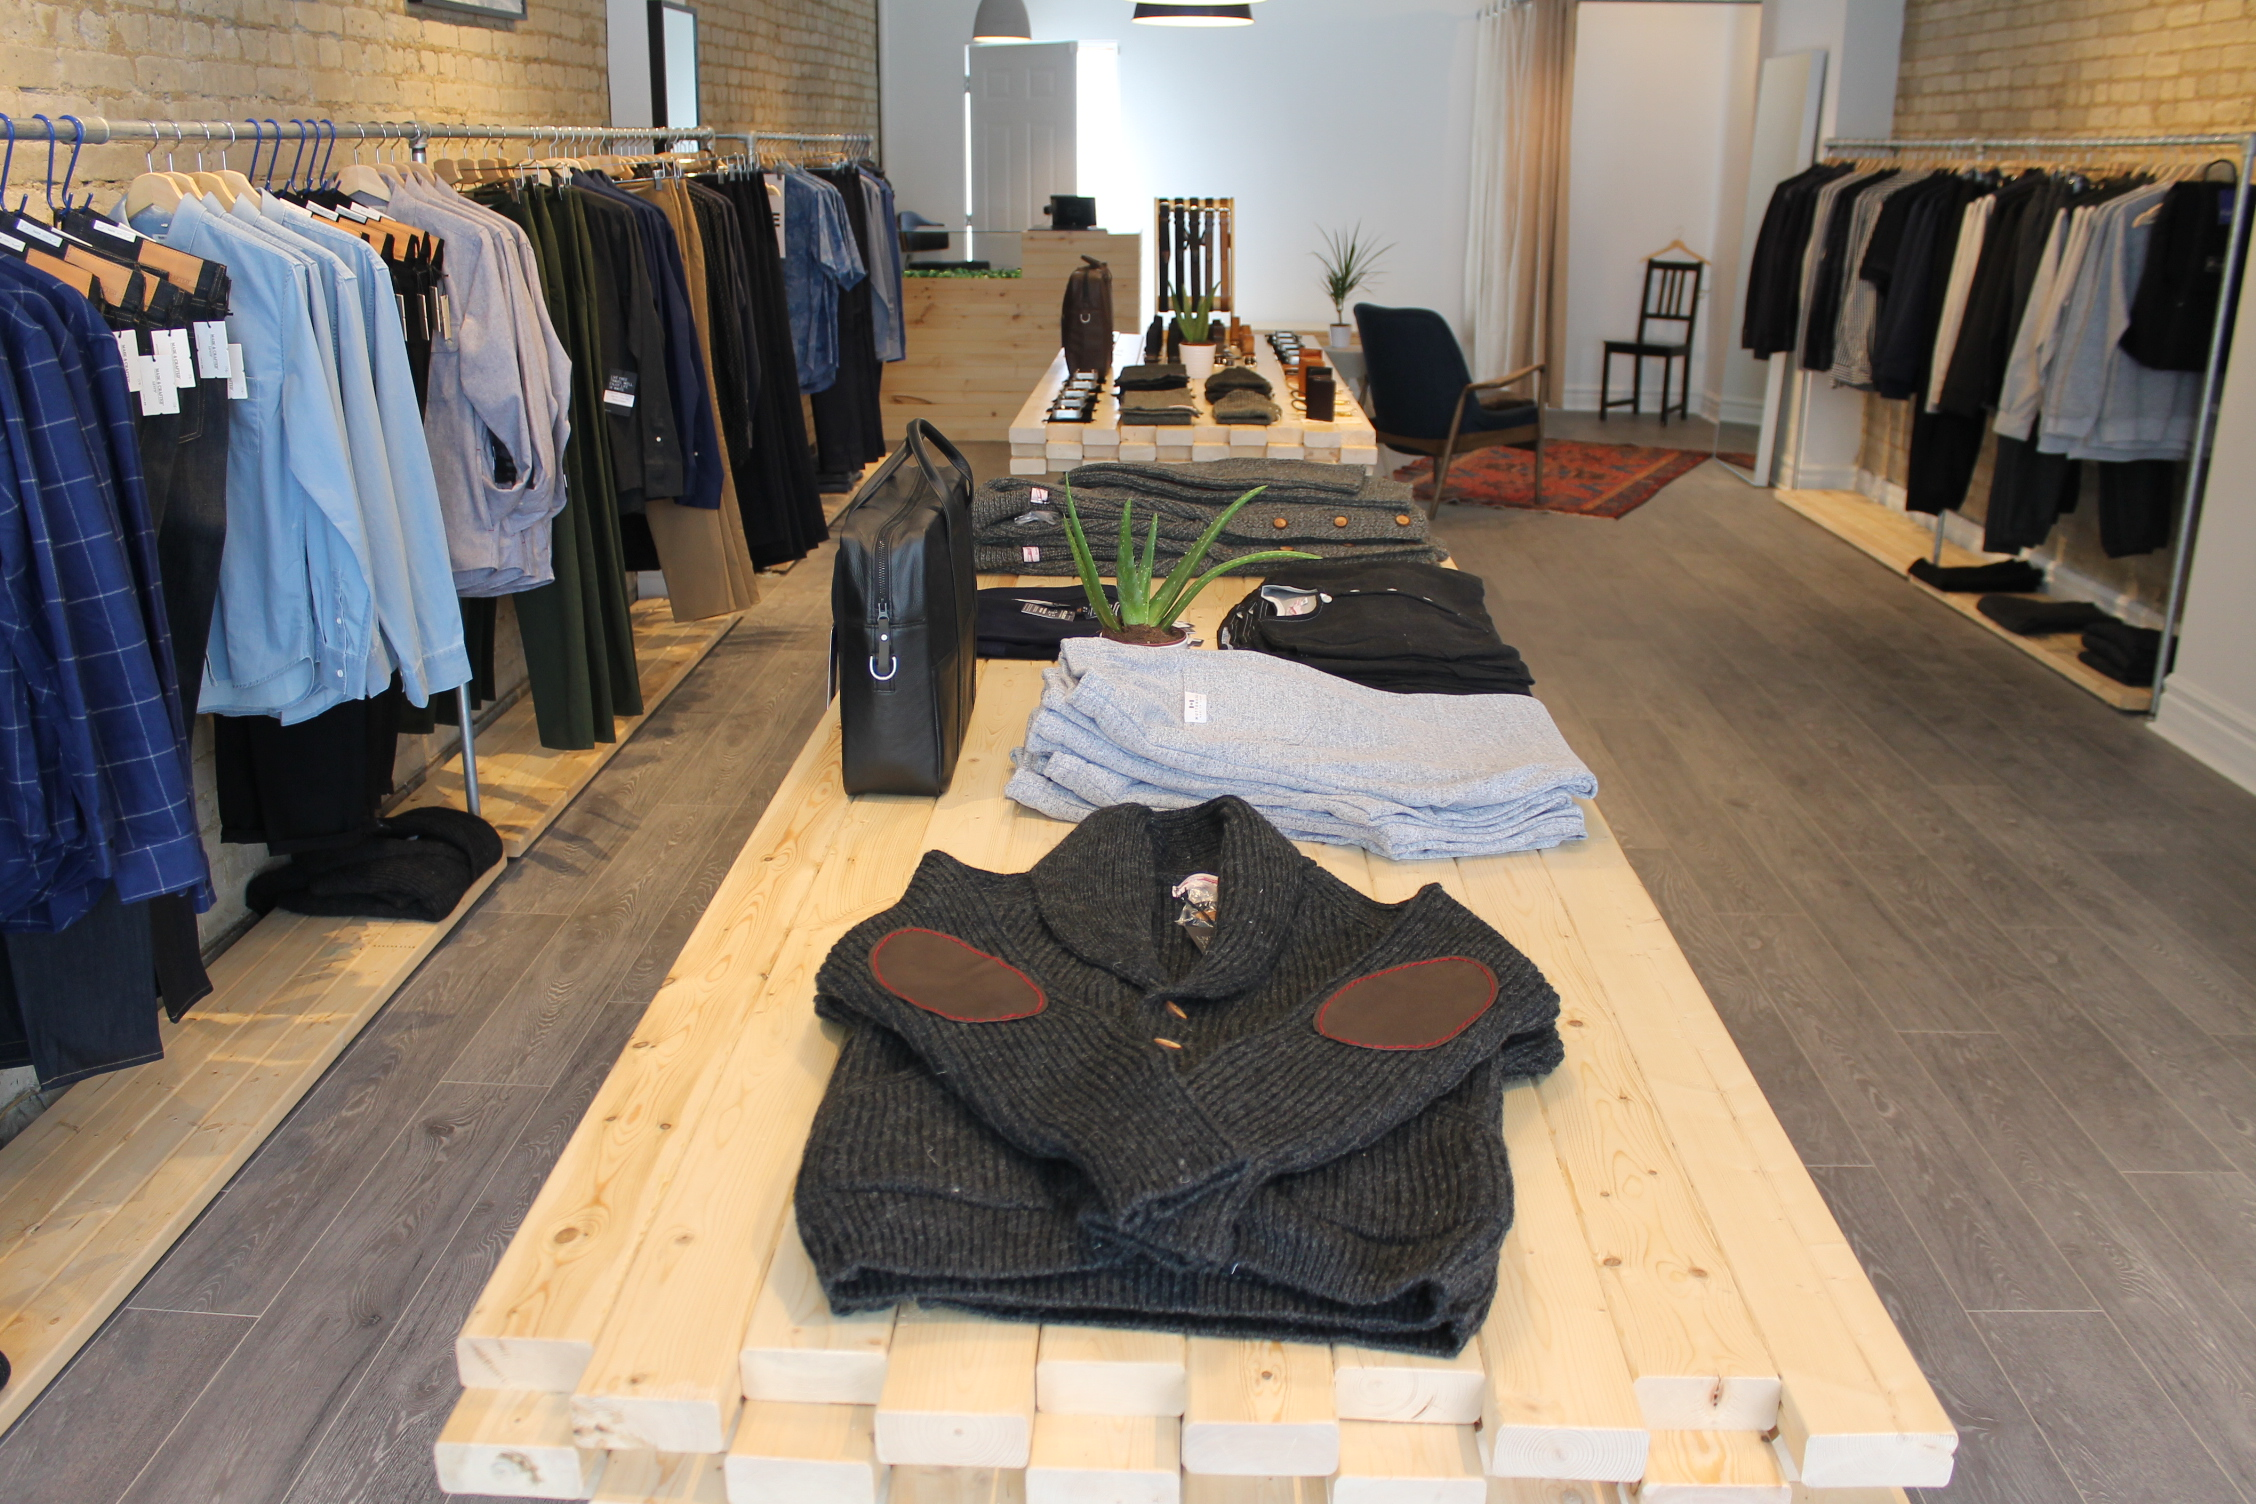 Picture of the interior of men's clothing store Muddy George